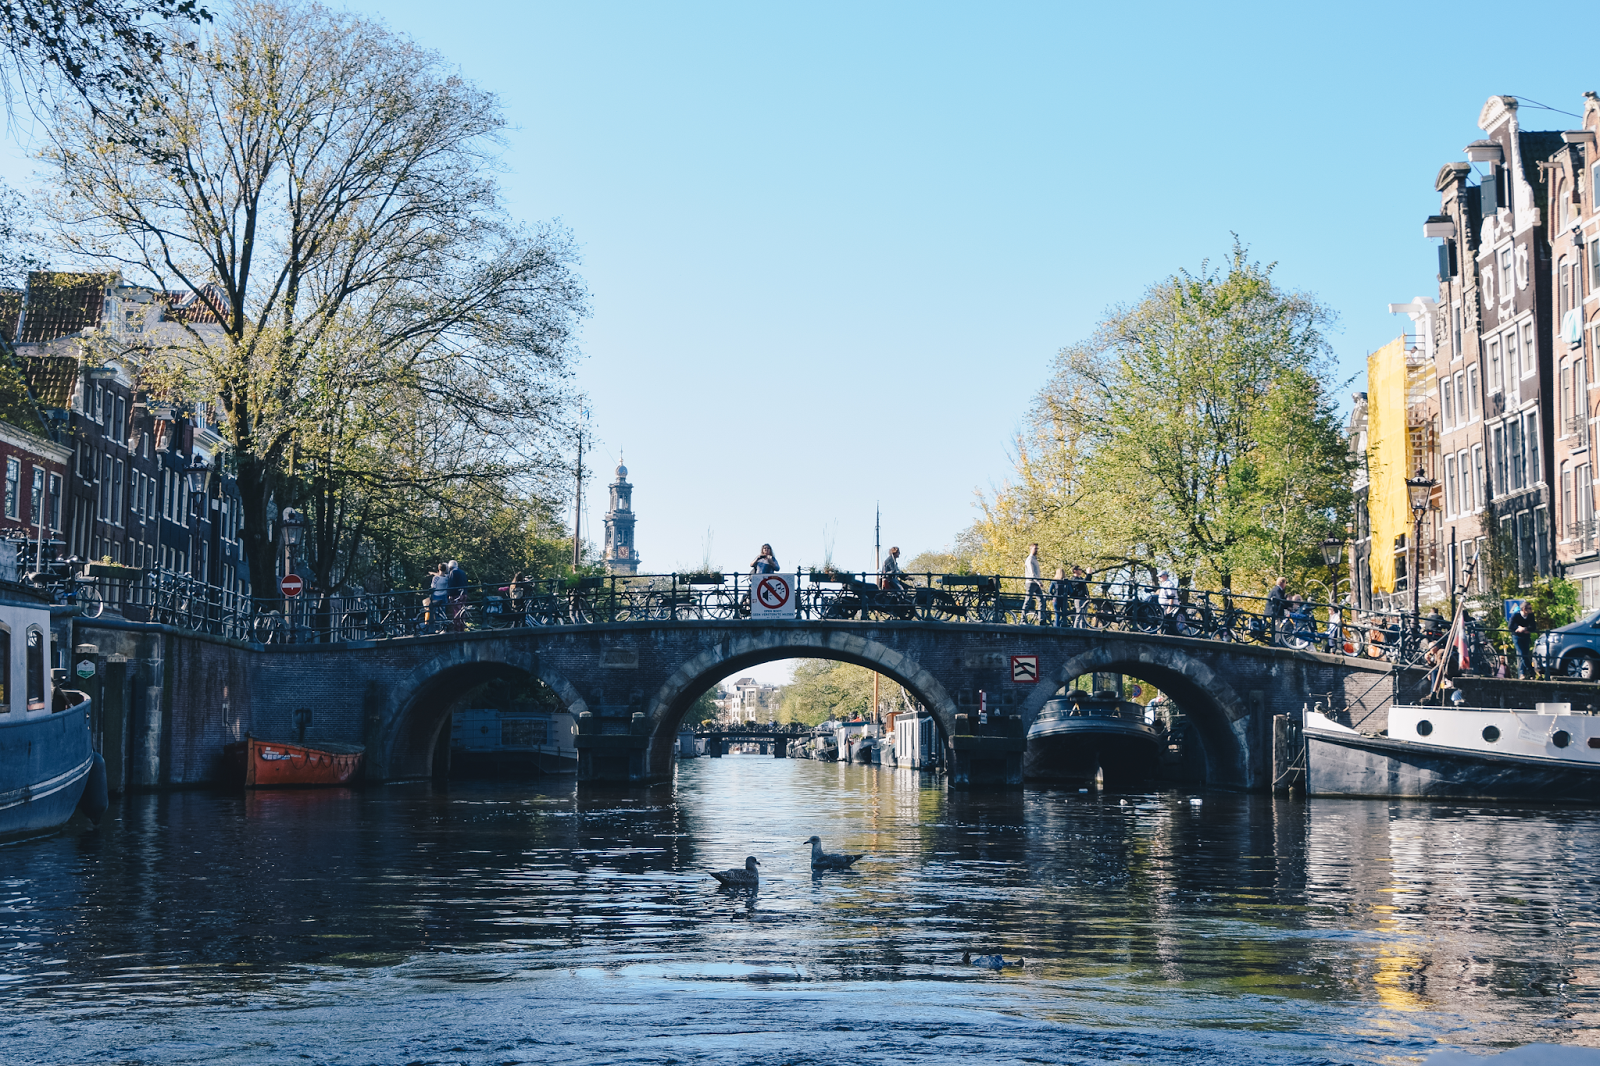 24 Hours in Amsterdam Noord: Top 5 Things to See & Do